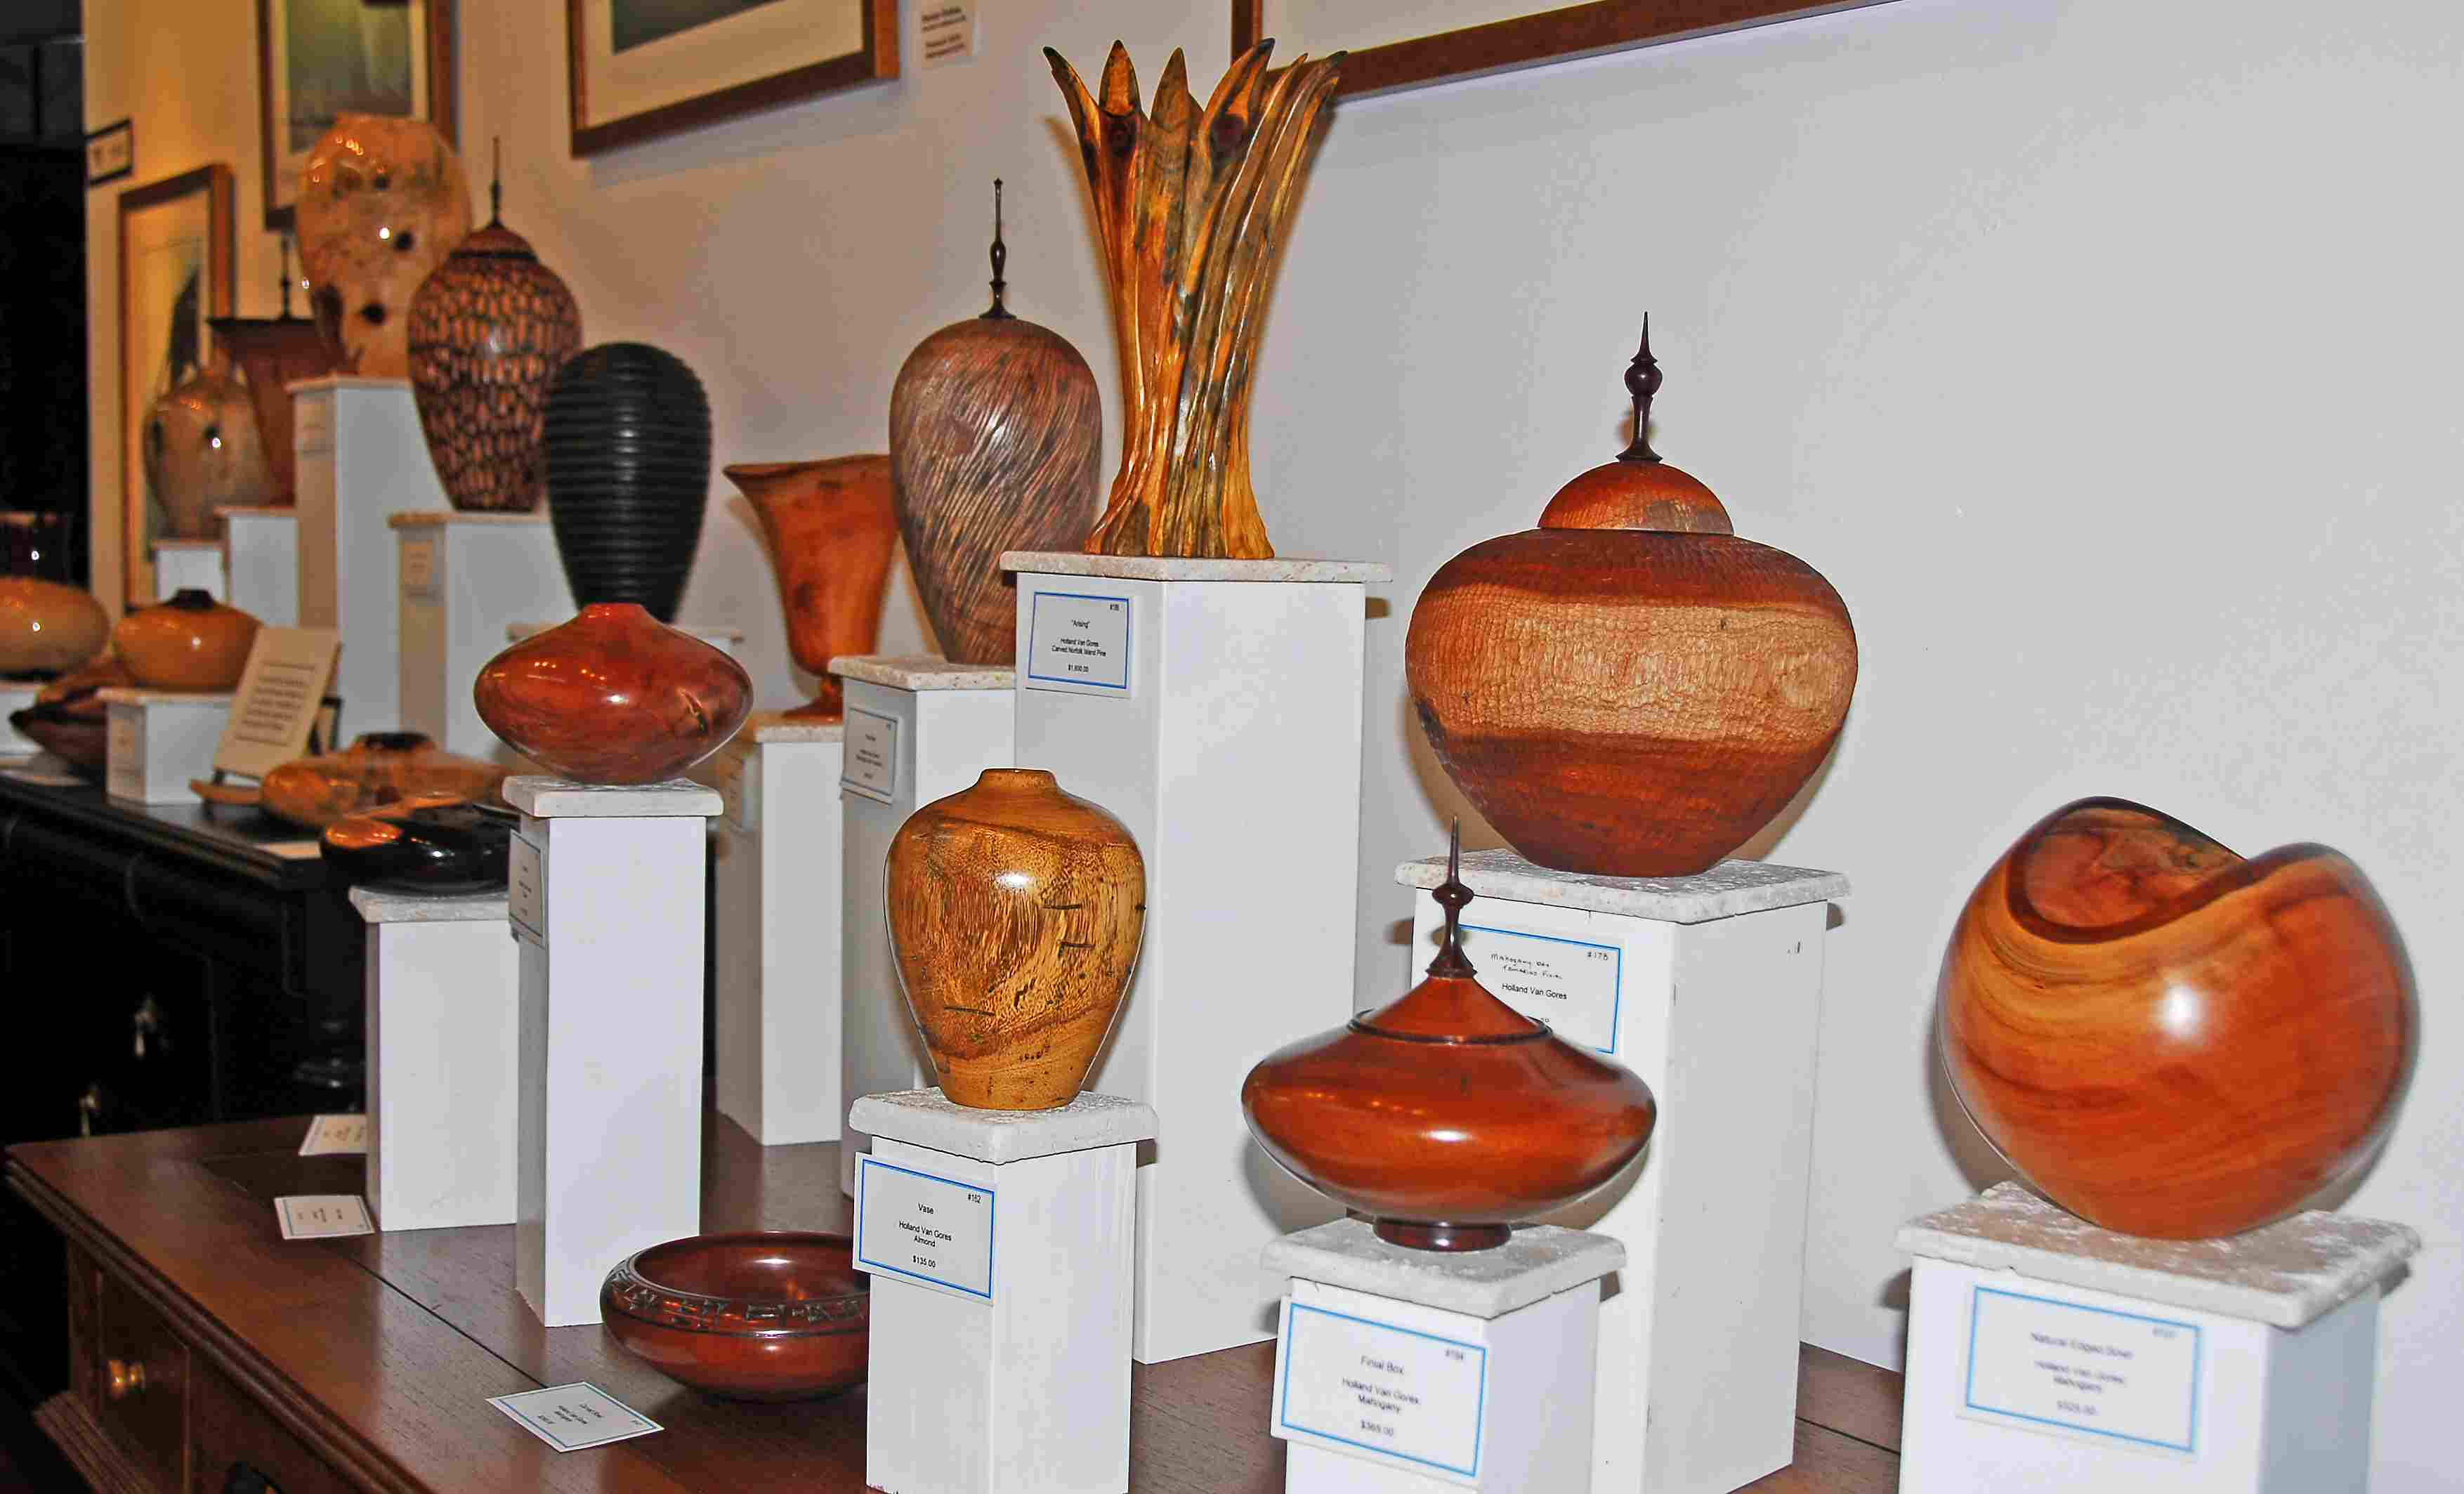 Holland Van Gores' provocative wood turnings